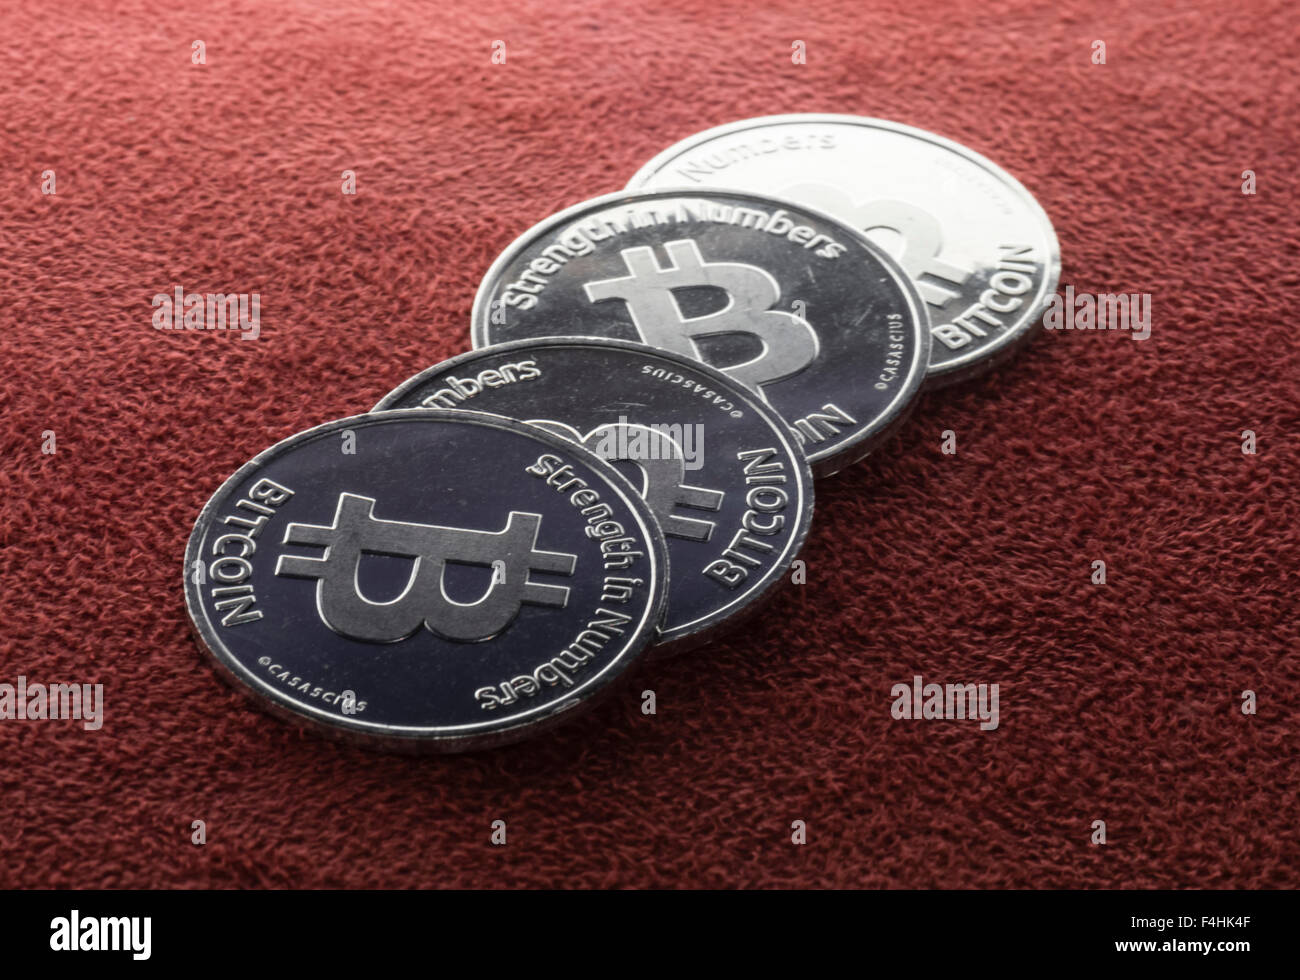 Stack of physical Bitcoin coins. - Stock Image